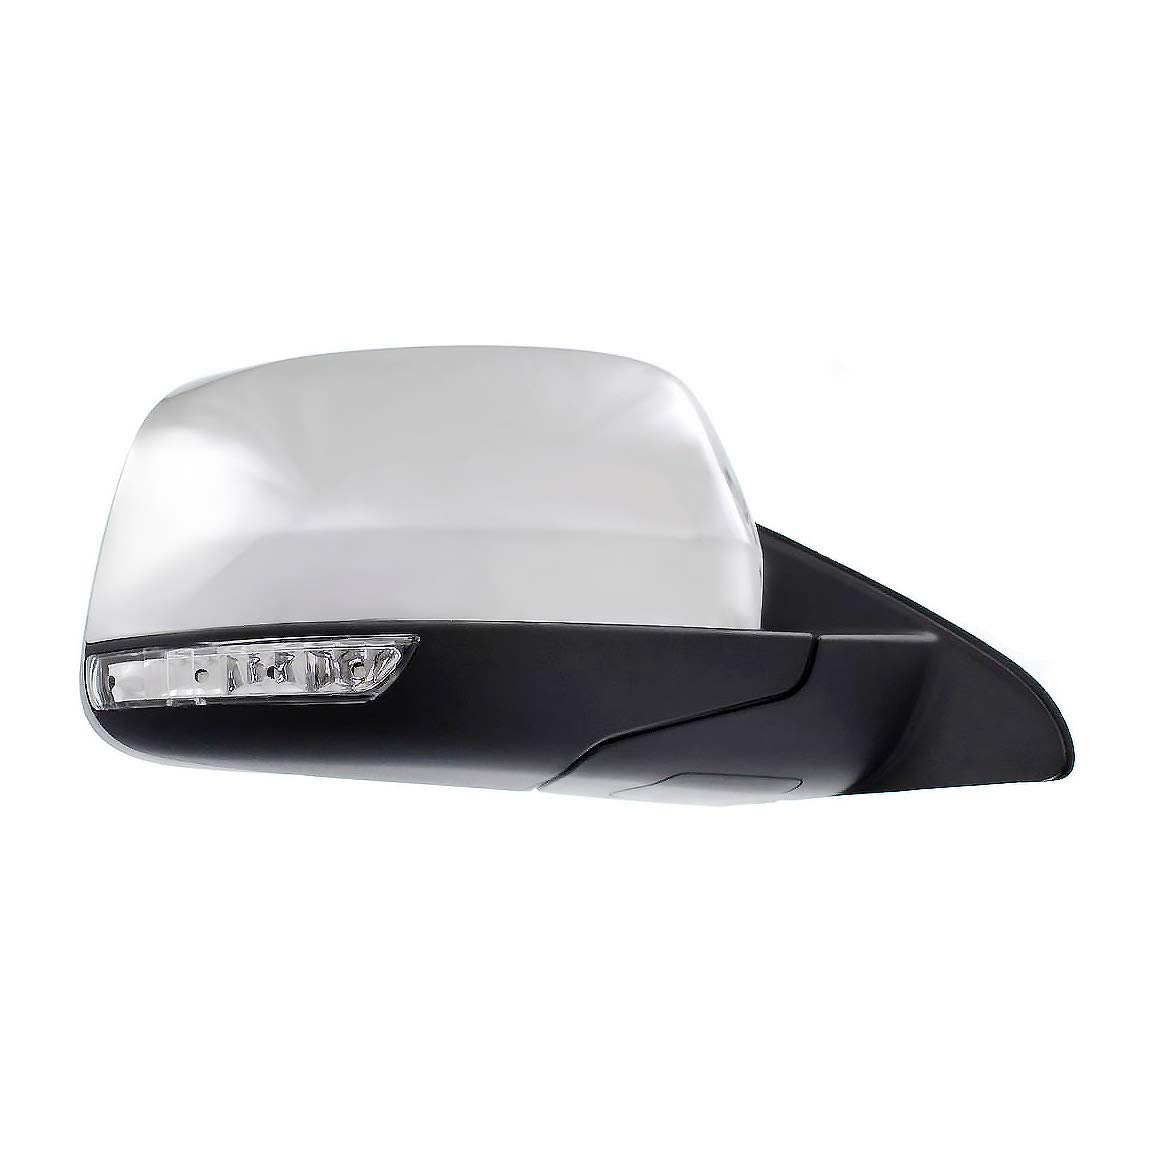 Passenger Side Chrome Heated Power Operated With Signal Side Light View Mirror for 2011-2016 Jeep Grand Cherokee - Parts Link #: CH1321358